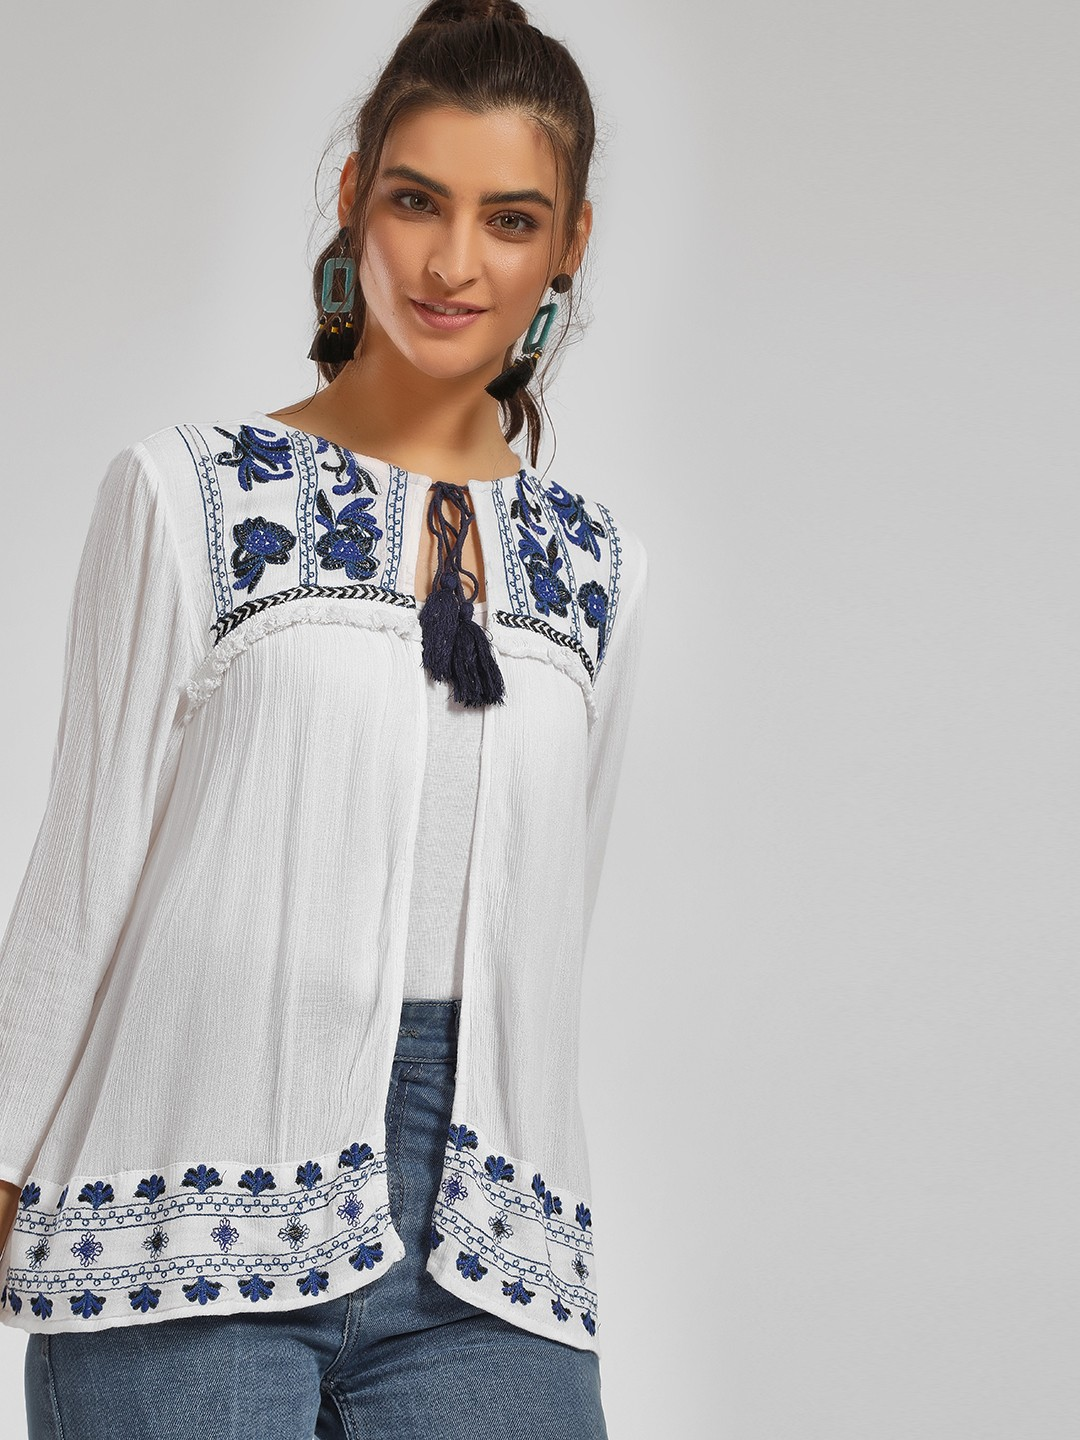 MIWAY White Floral Embroidered Tassel Tie-Up Shrug 1